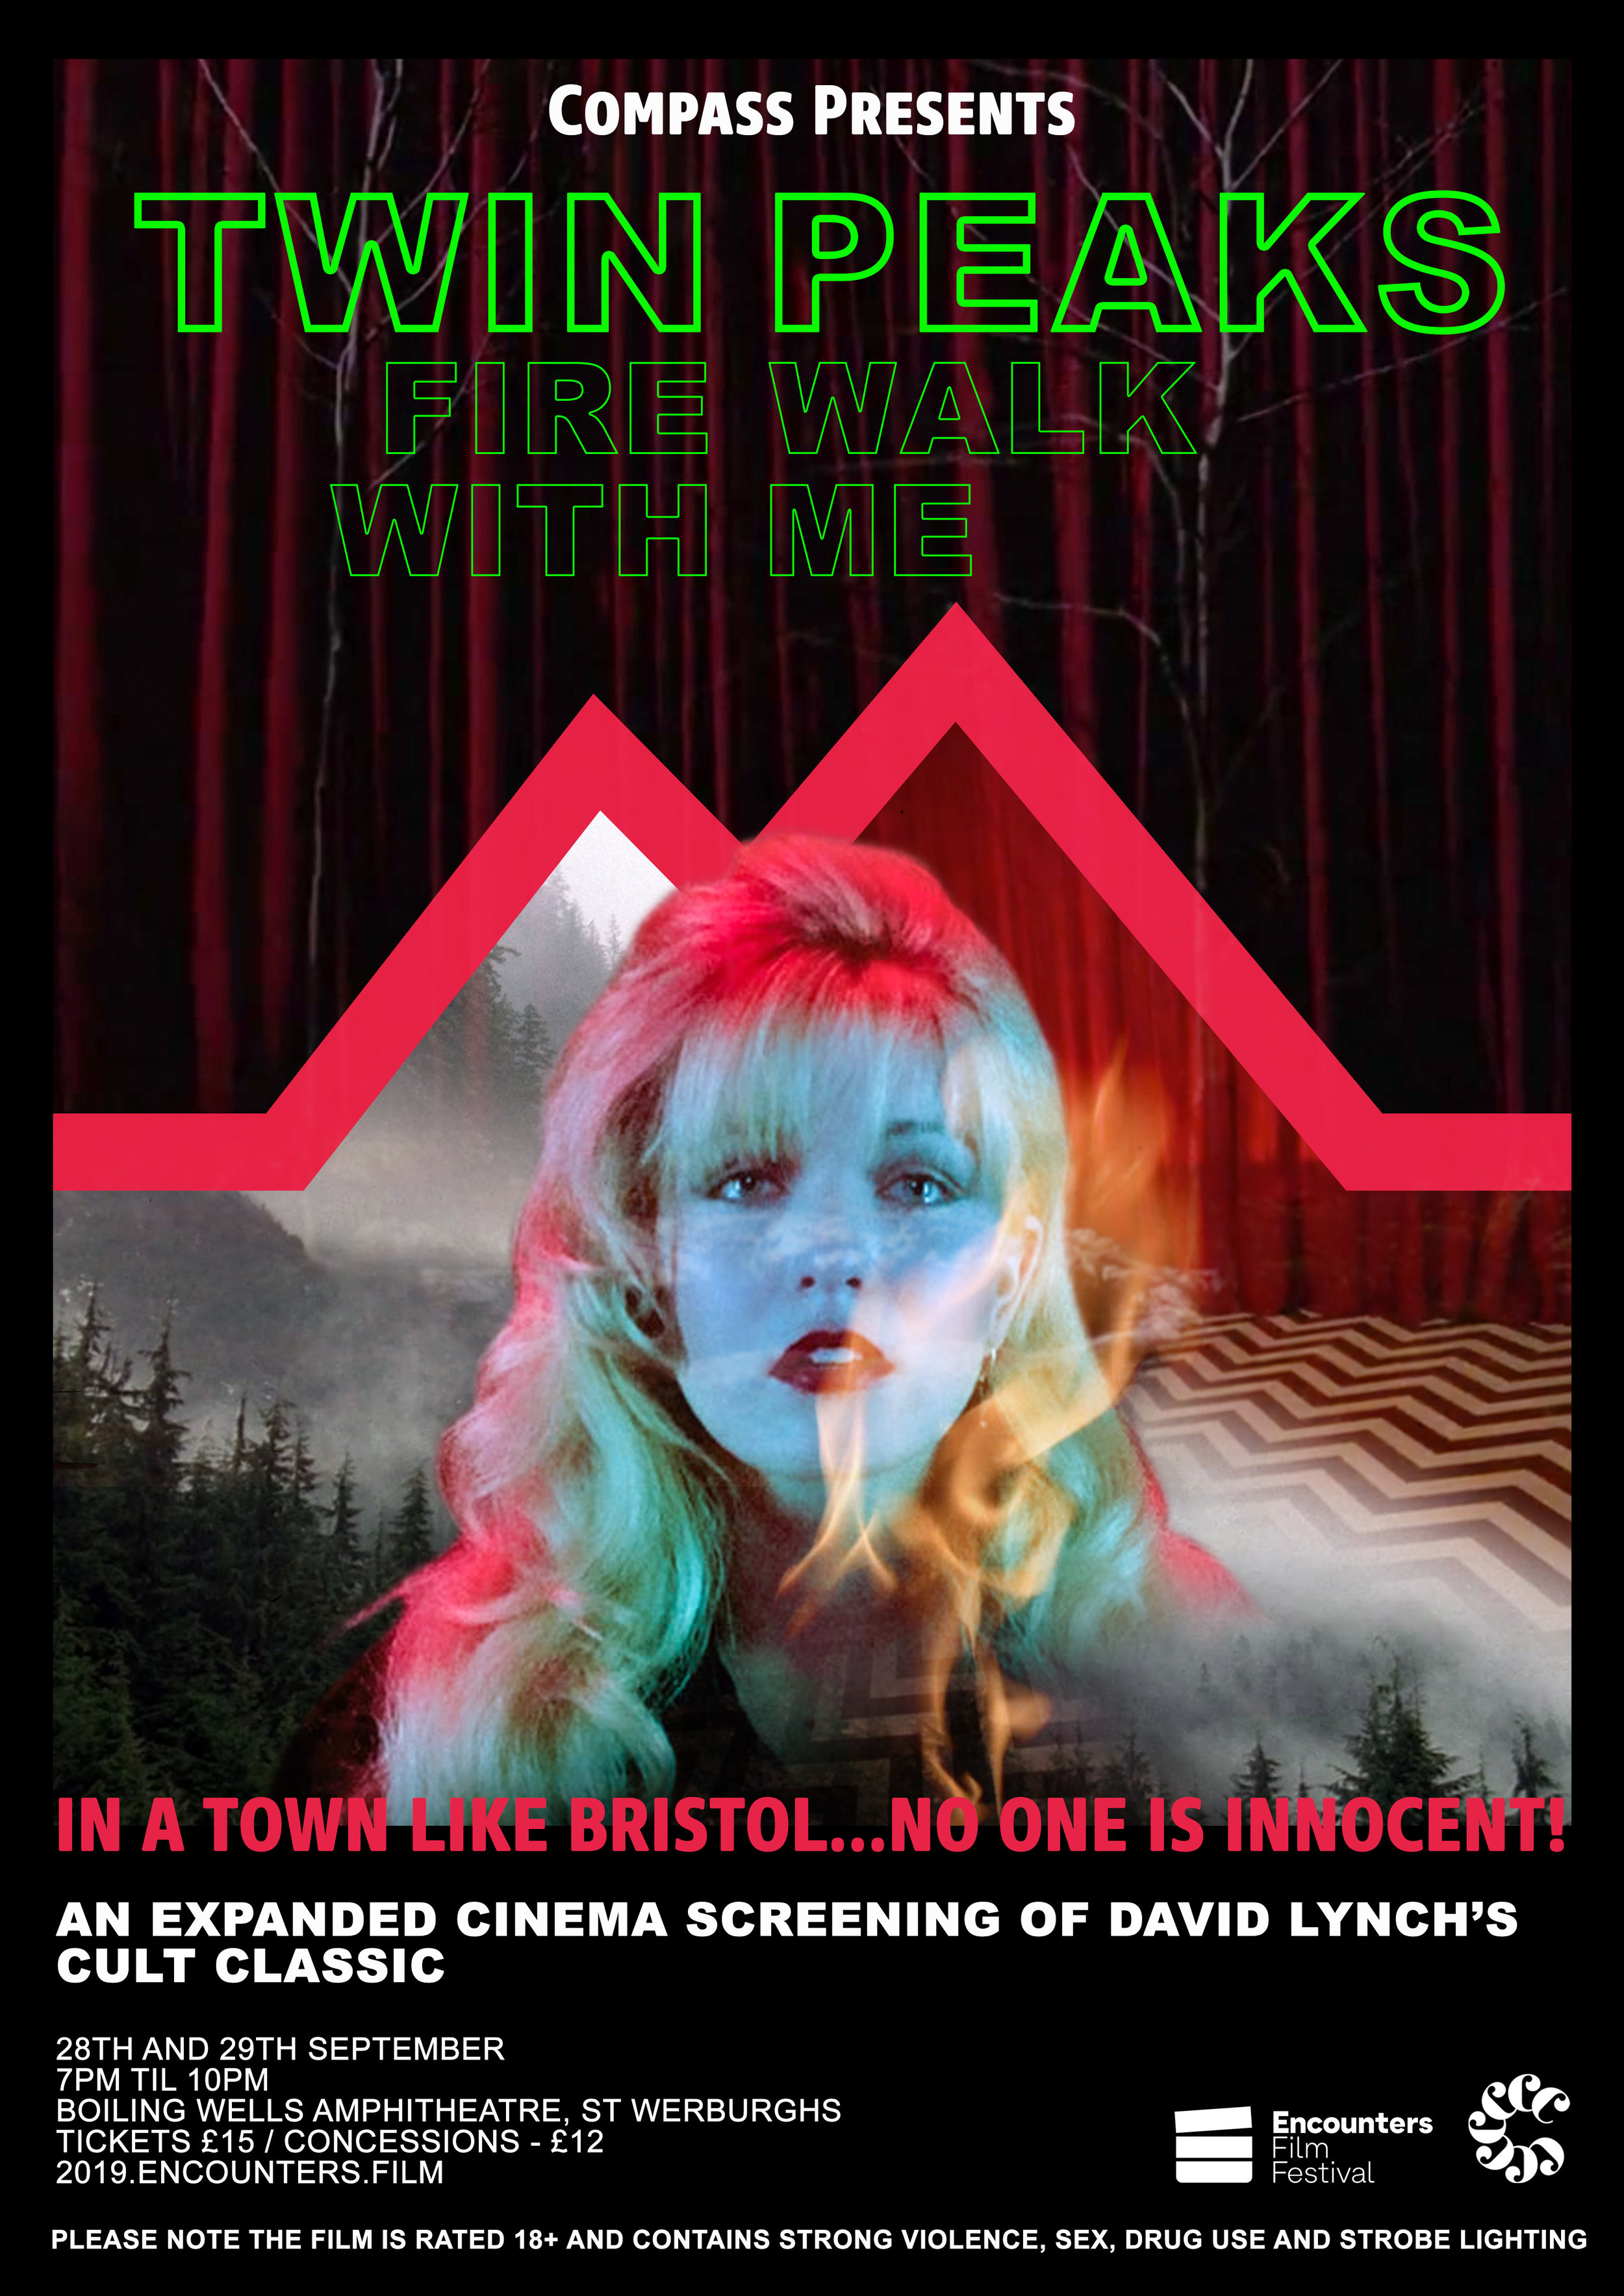 FIRW WALK WITH ME POSTER MAIN 2.jpg